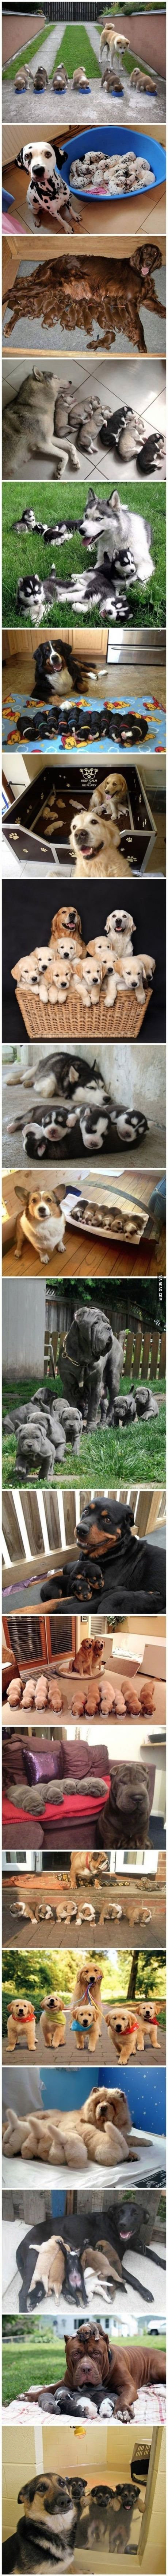 best animals images on pinterest cutest dogs fluffy pets and